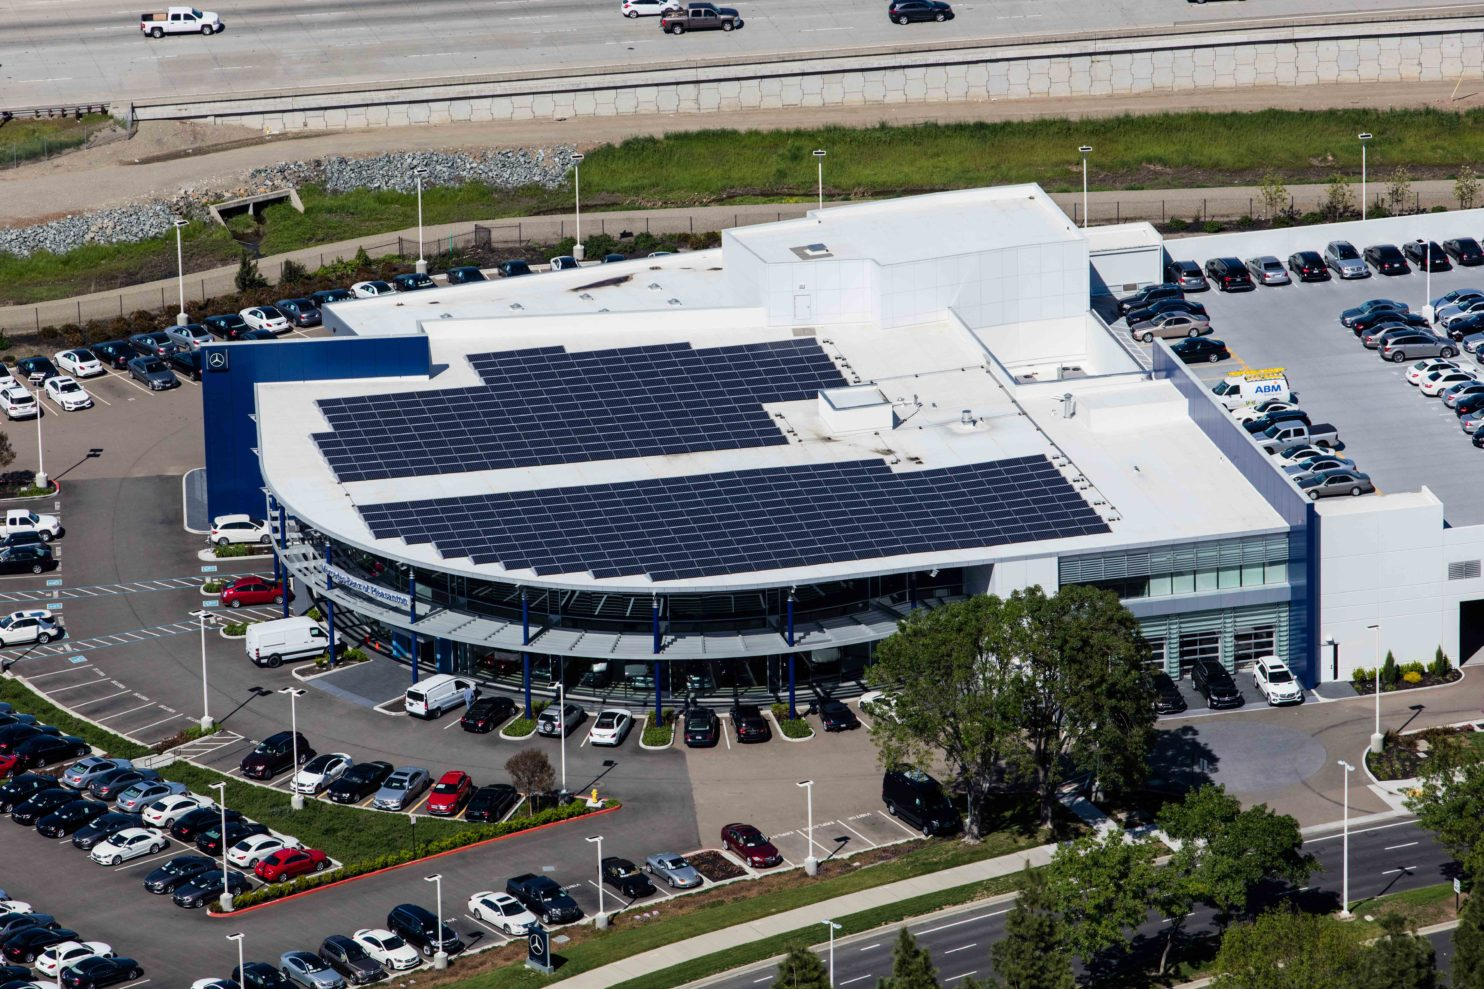 Commercial roof with solar panels